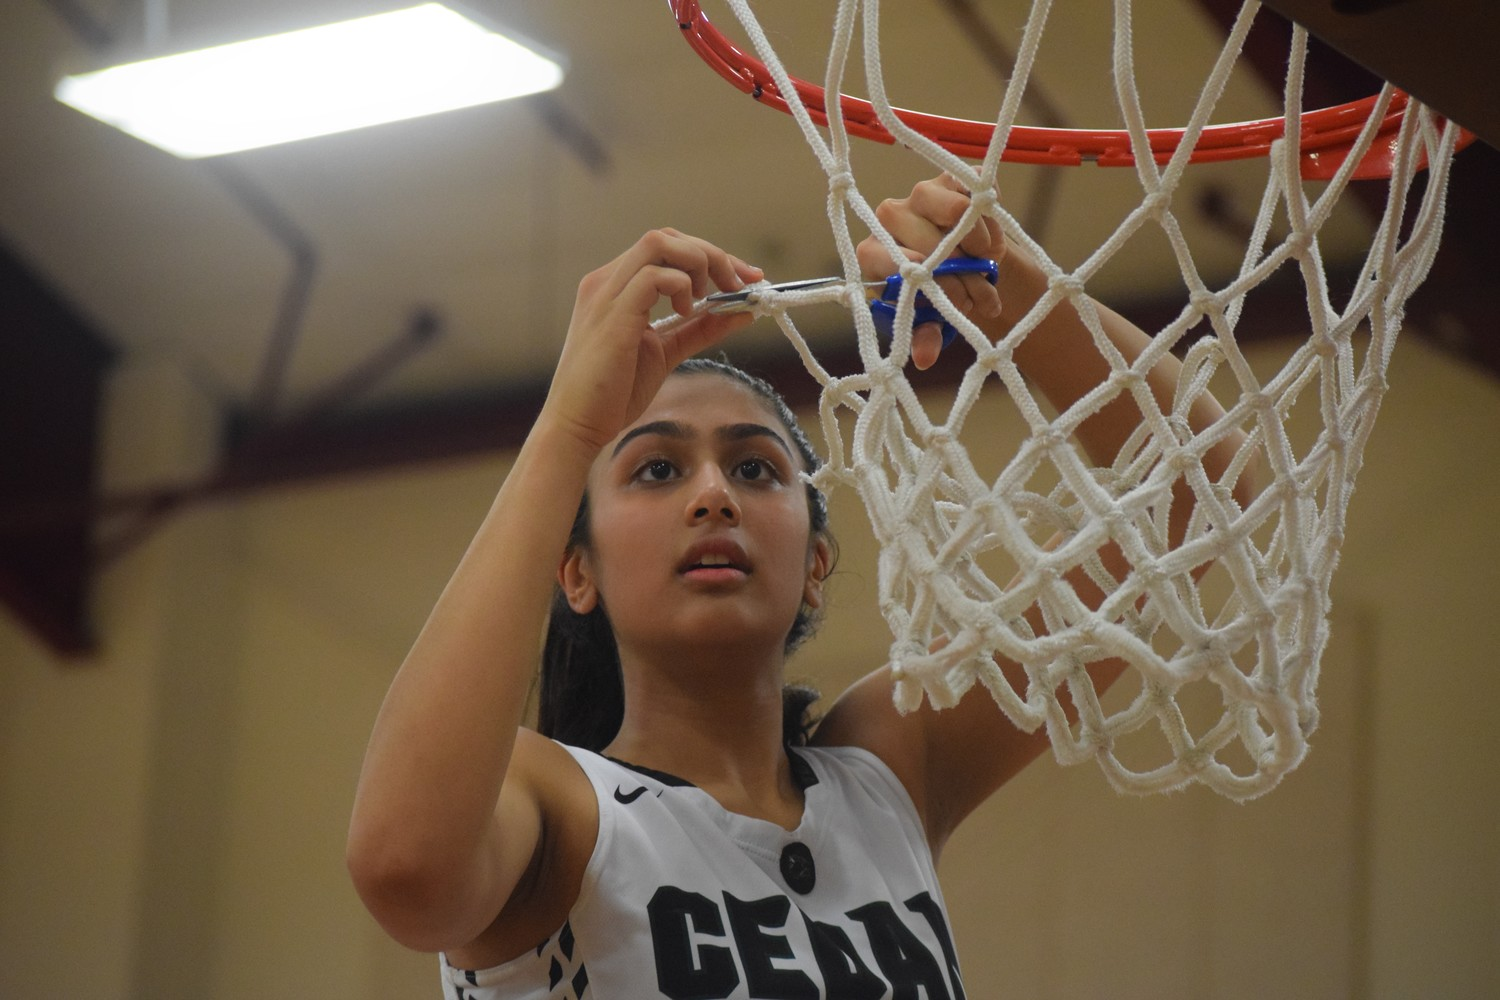 Pujita Shukla and Cedar Park made it to the regional semifinals for the first time in school history and pushed their winning streak to 16 games on Tuesday night with a 58-31 win against Magnolia West 58-31 at Flatonia High School.